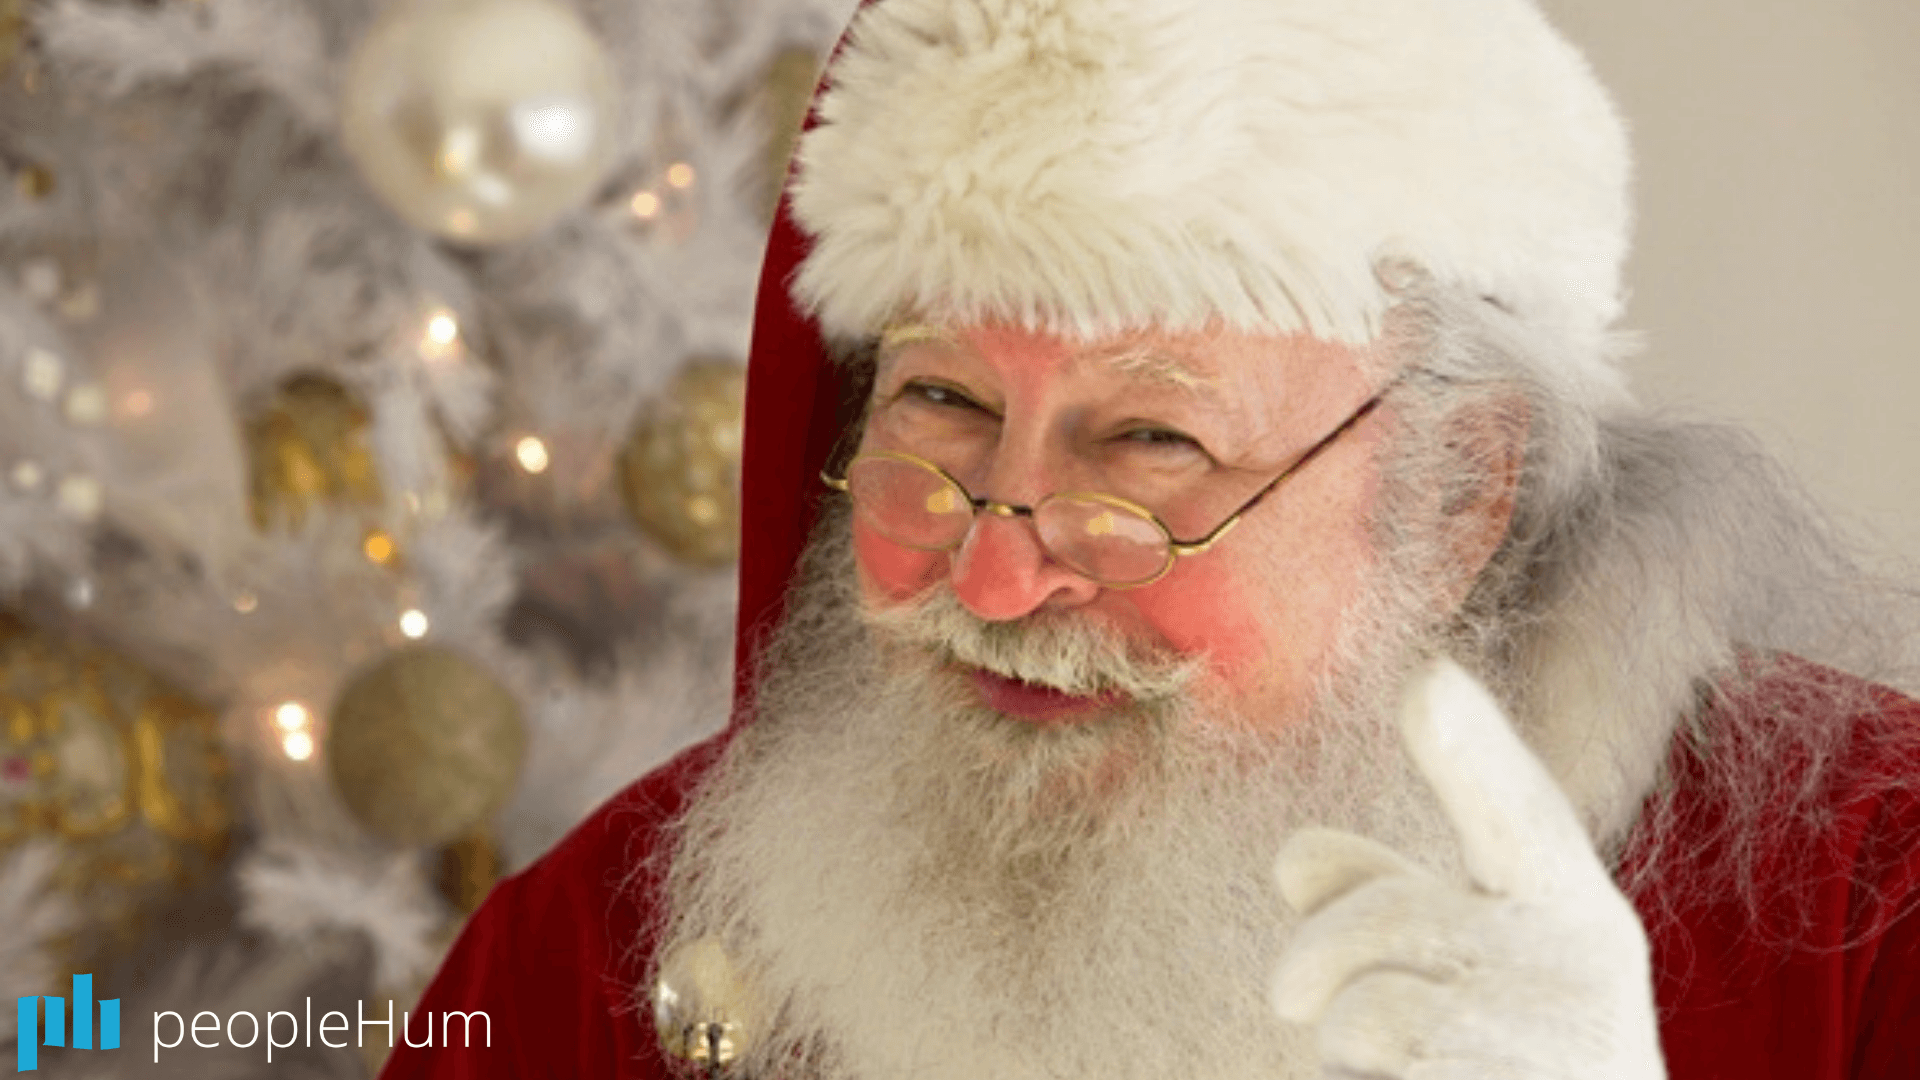 The greatest leader ever? Santa Claus!